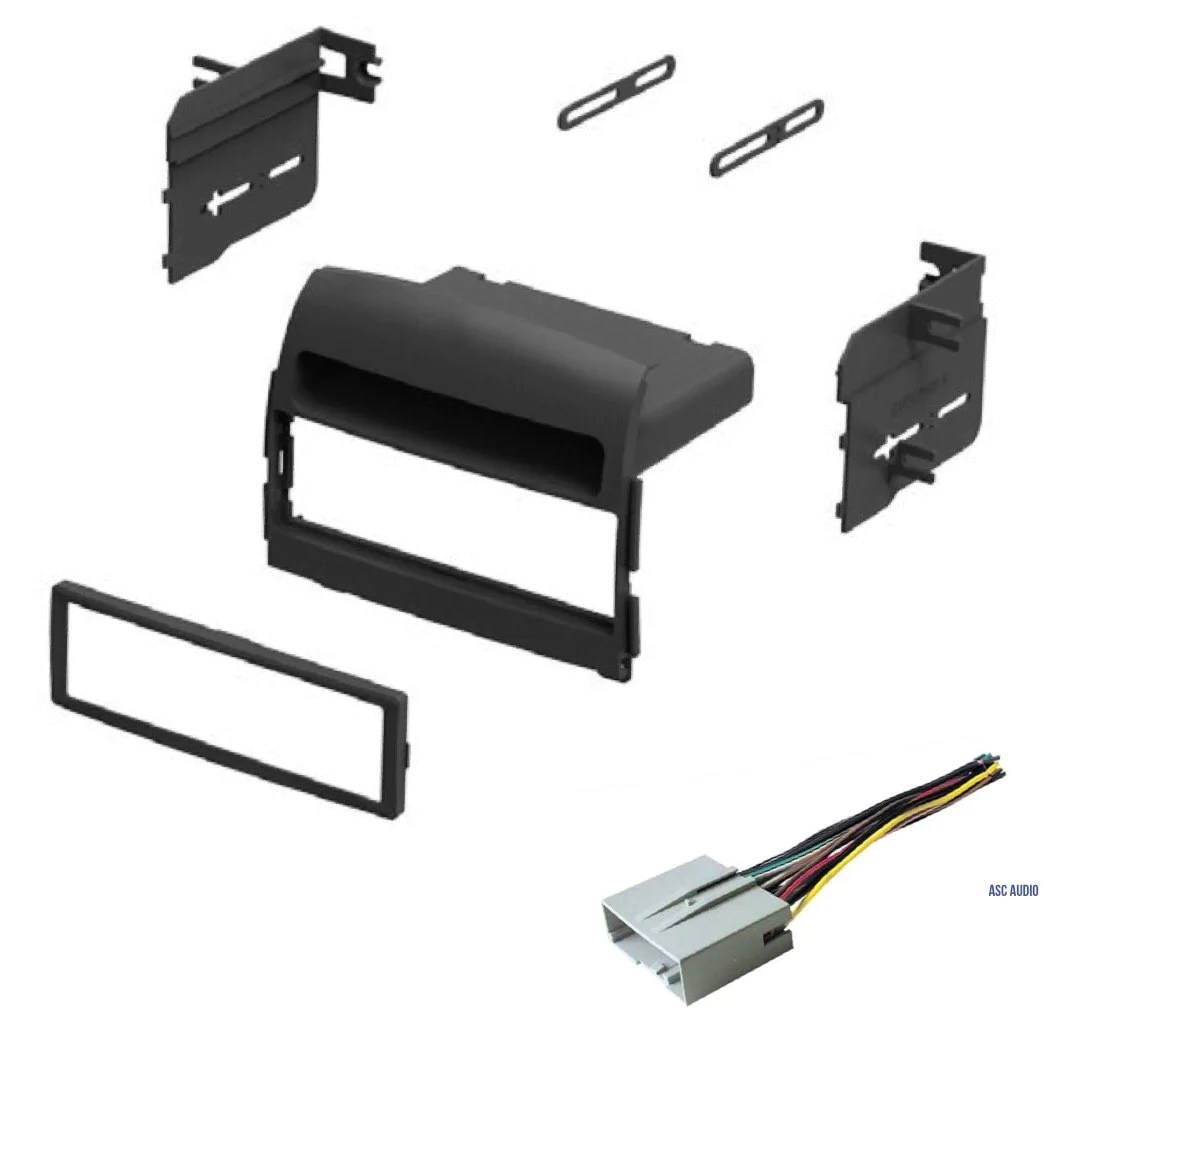 small resolution of car stereo install dash kit and wire harness for installing an aftermarket single din radio for 2